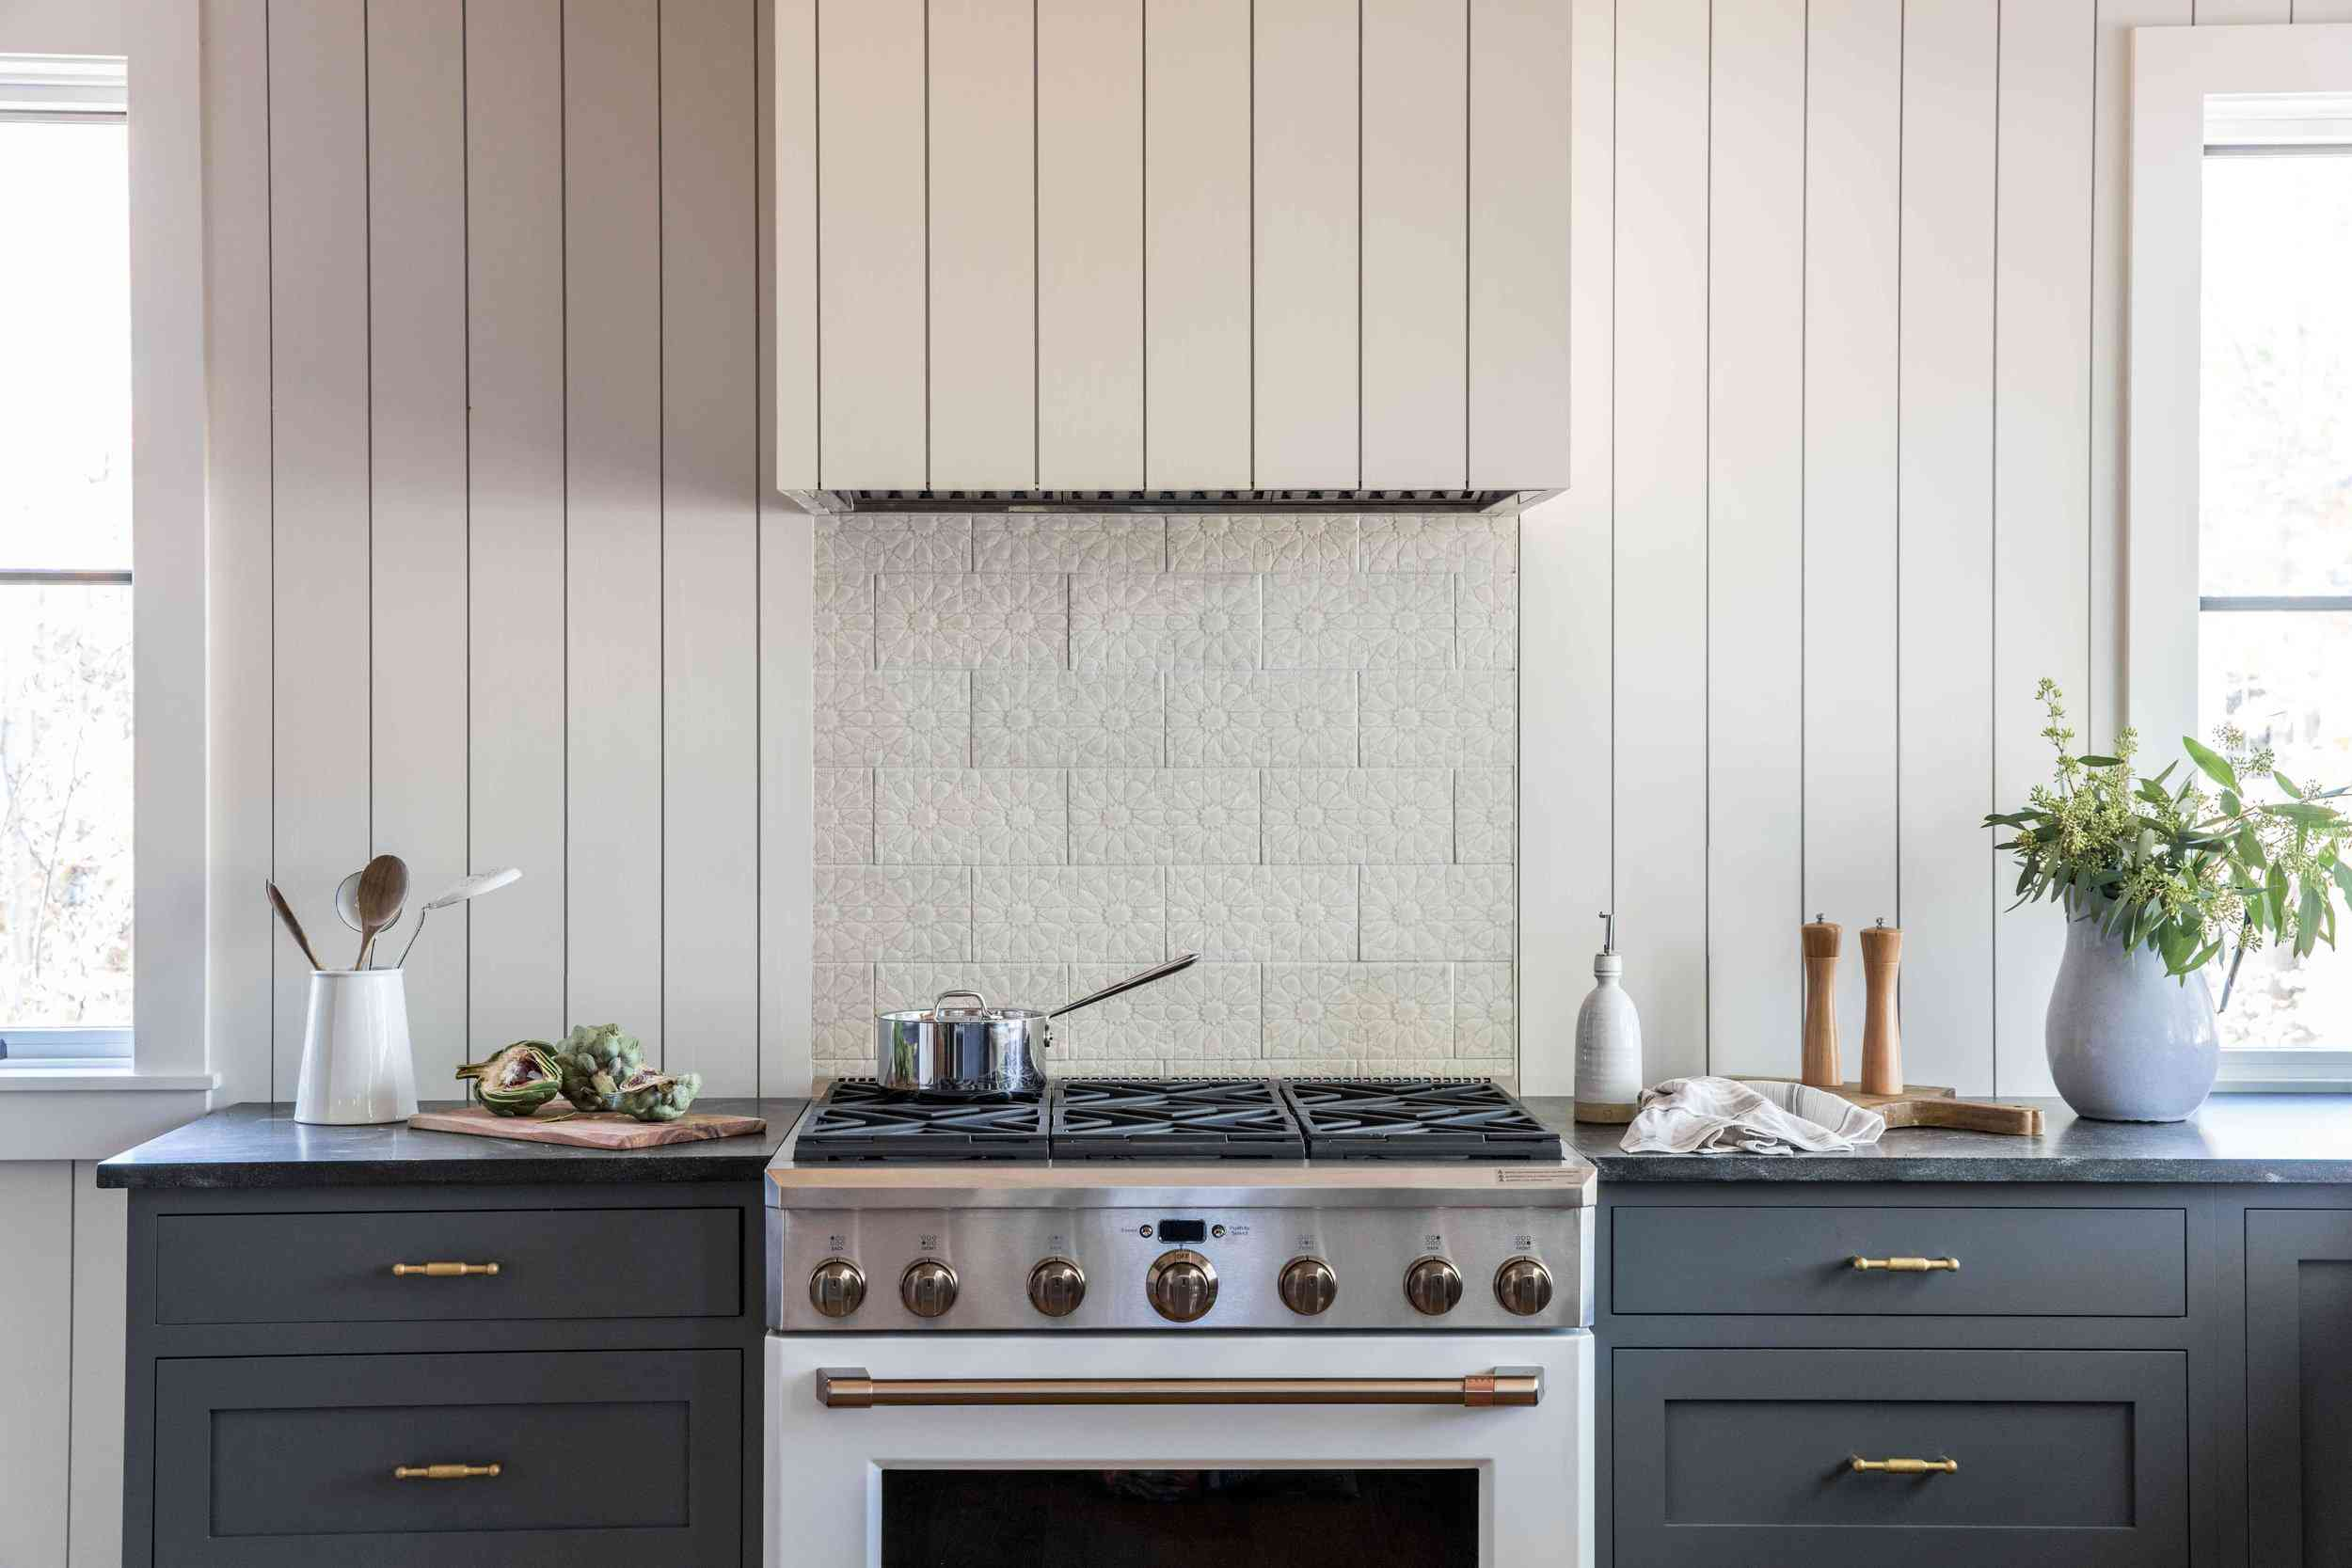 A white kitchen backsplash lined with textured tiles